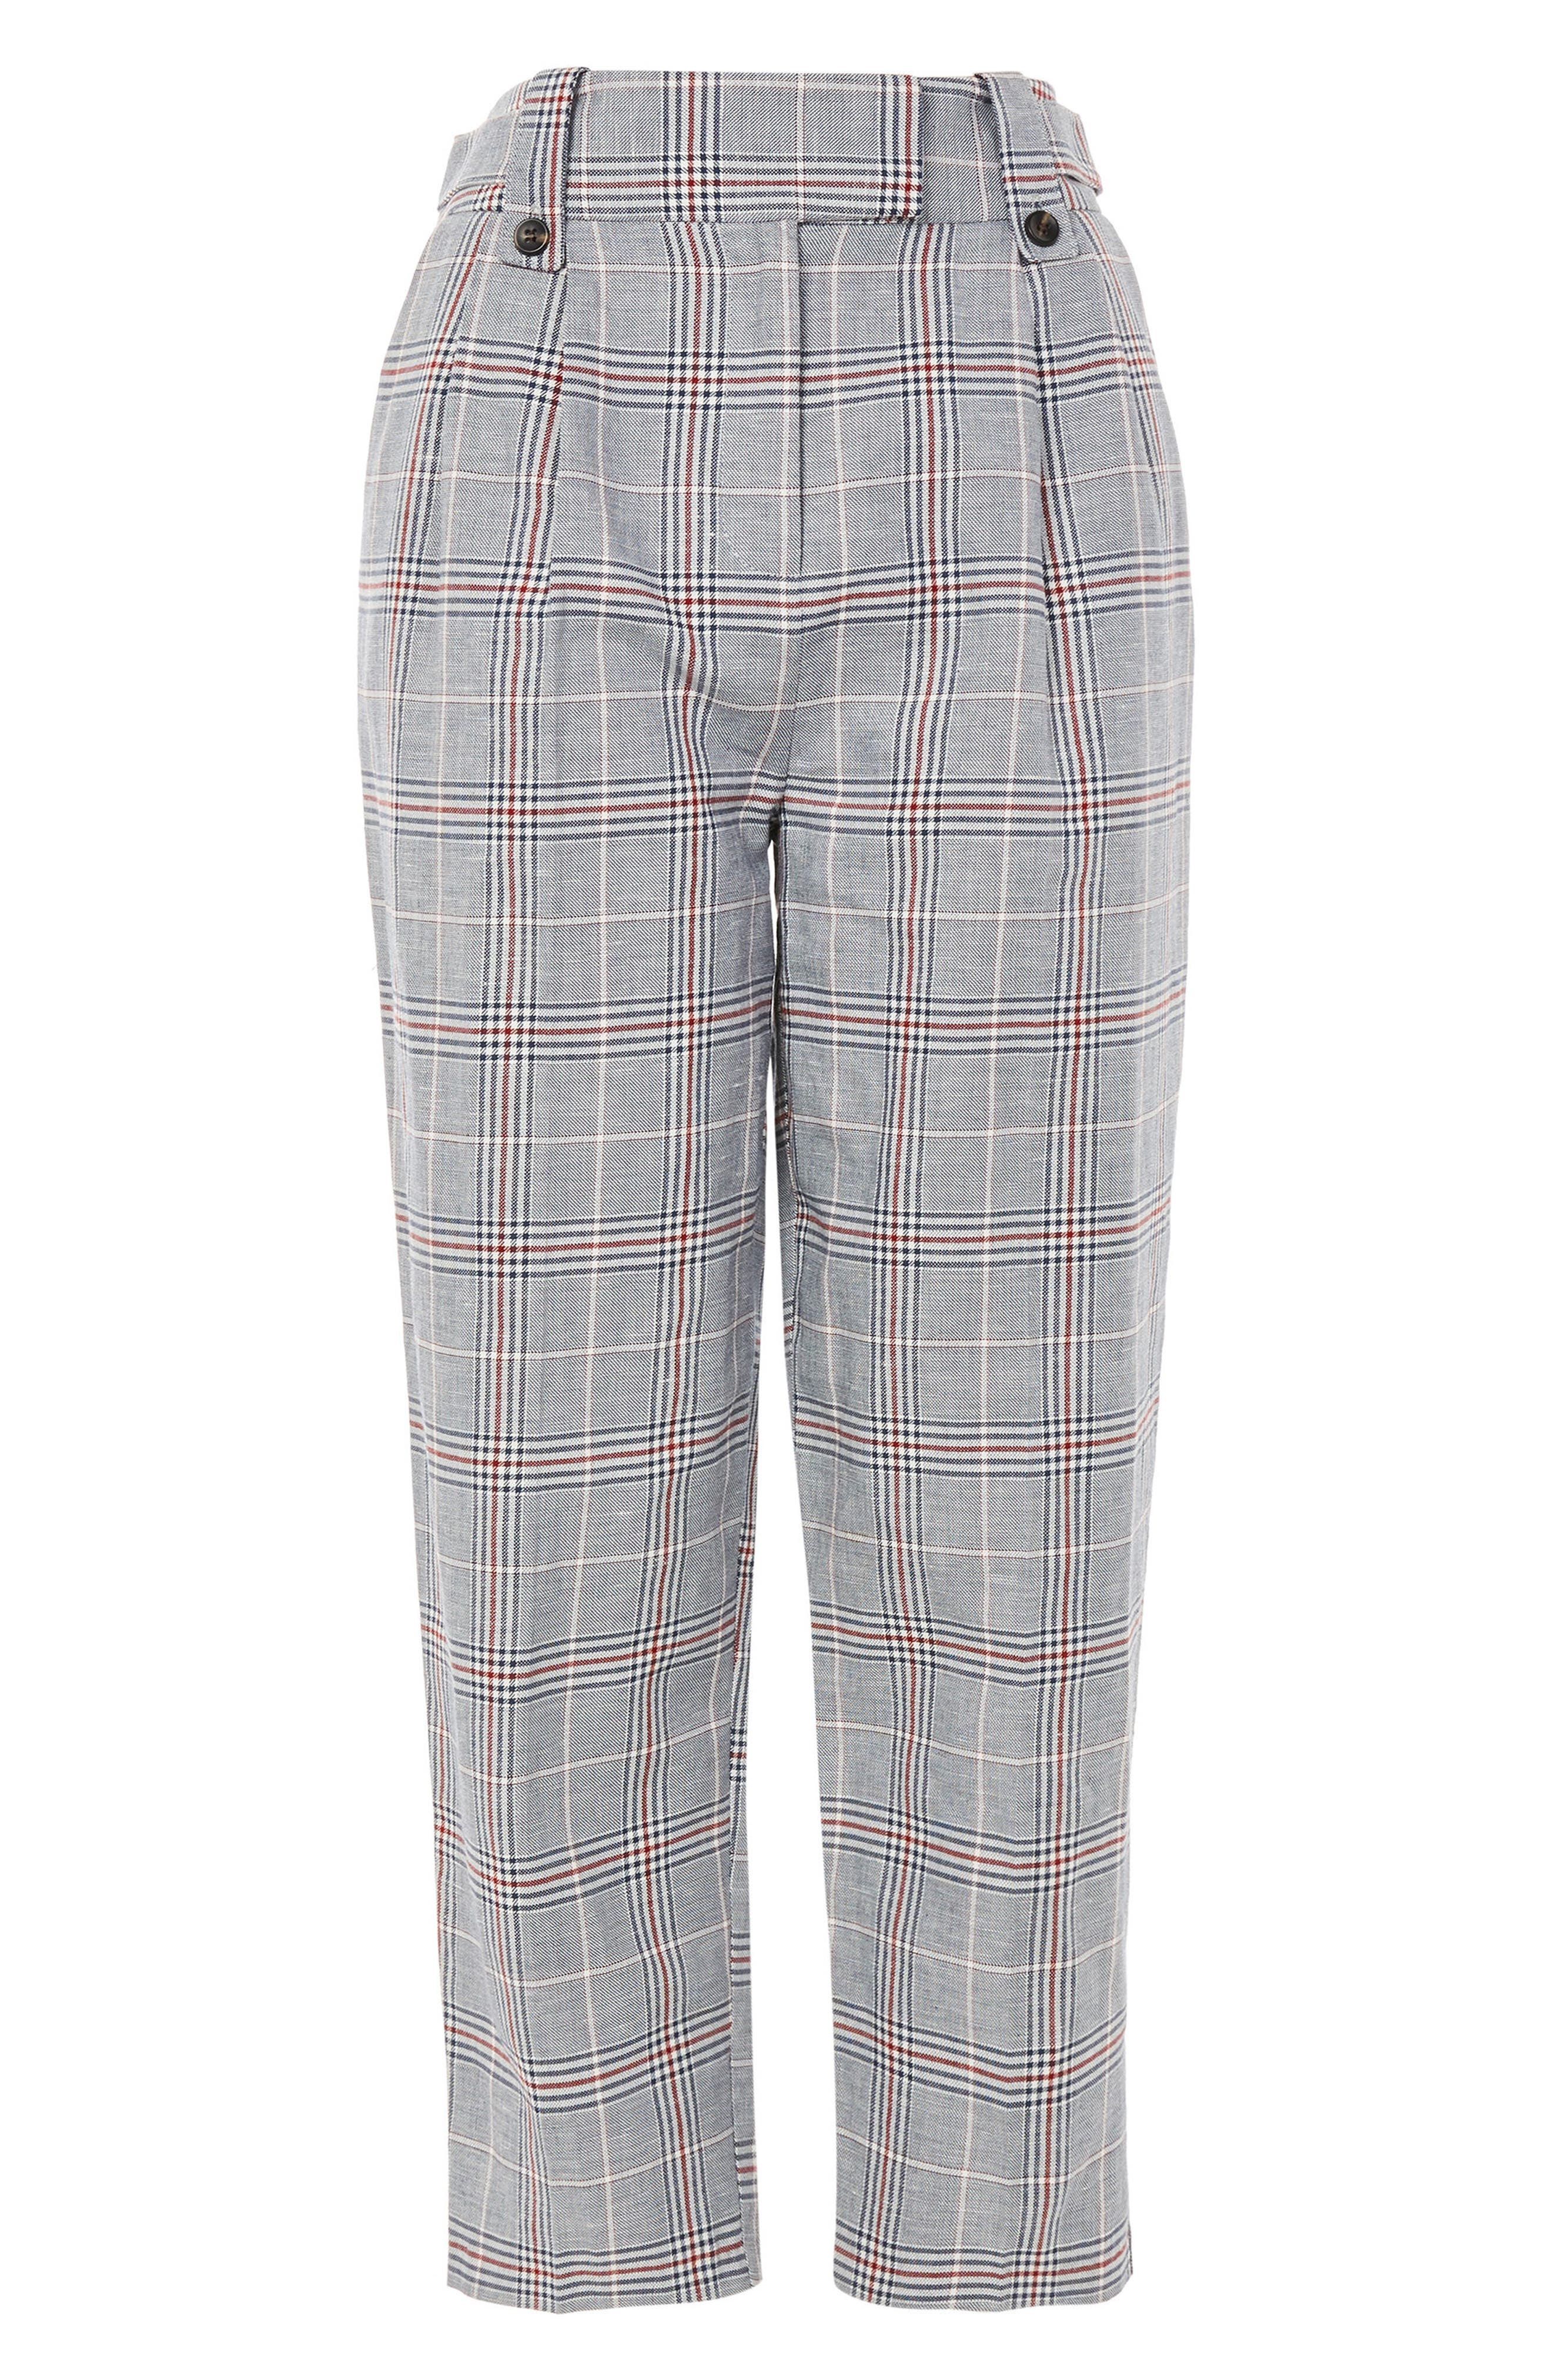 Cham Linen Checked Trousers,                             Alternate thumbnail 4, color,                             Grey  Multi